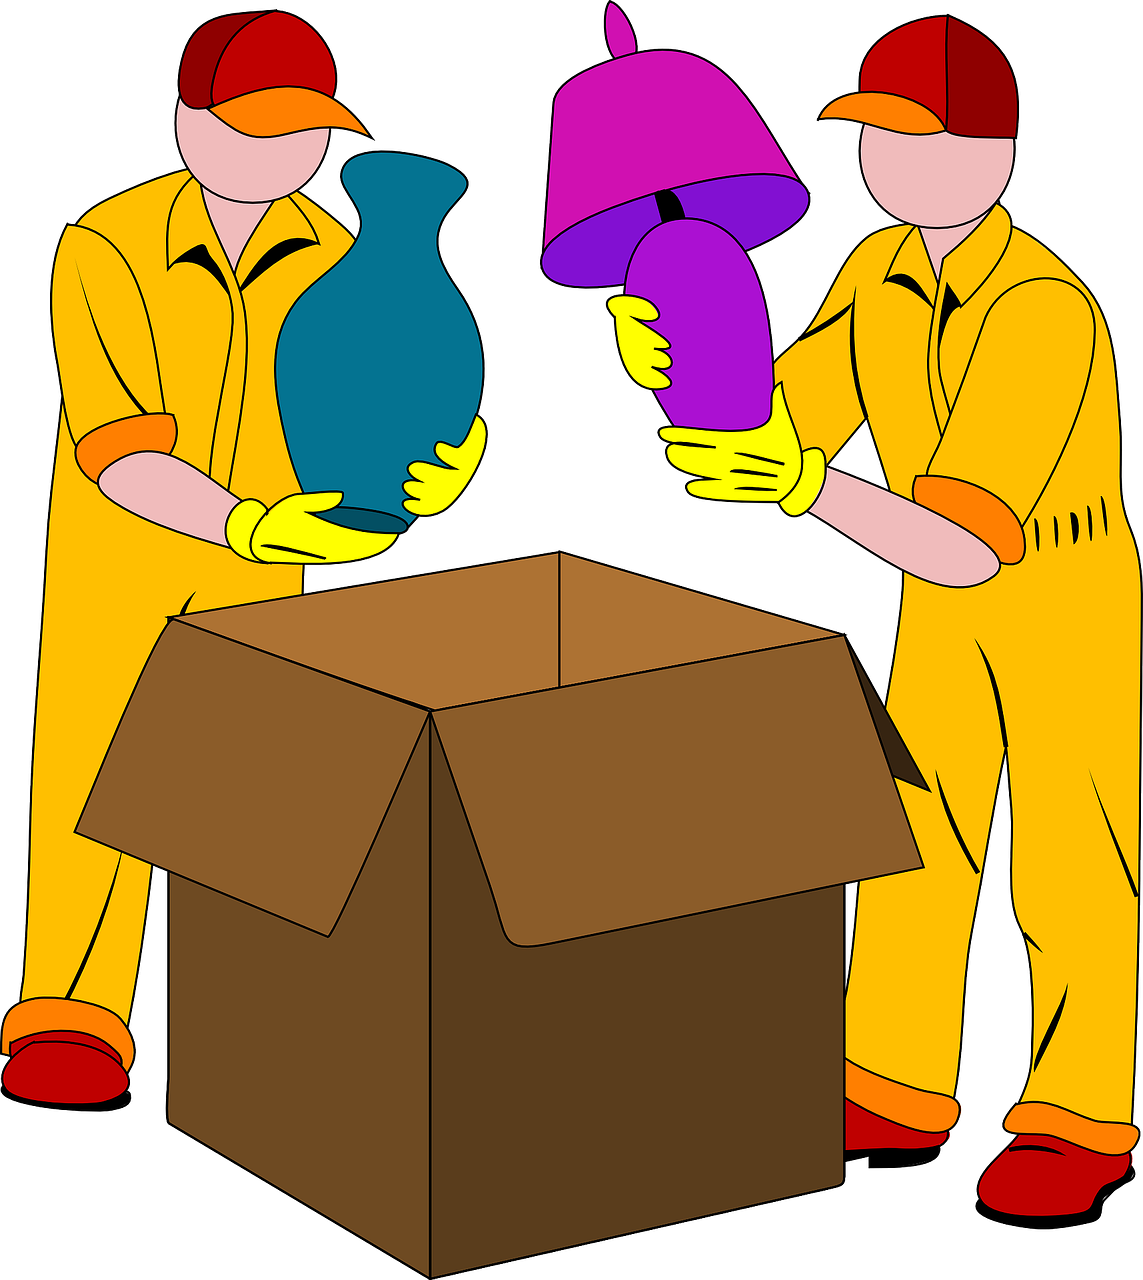 movers-24403_1280.png